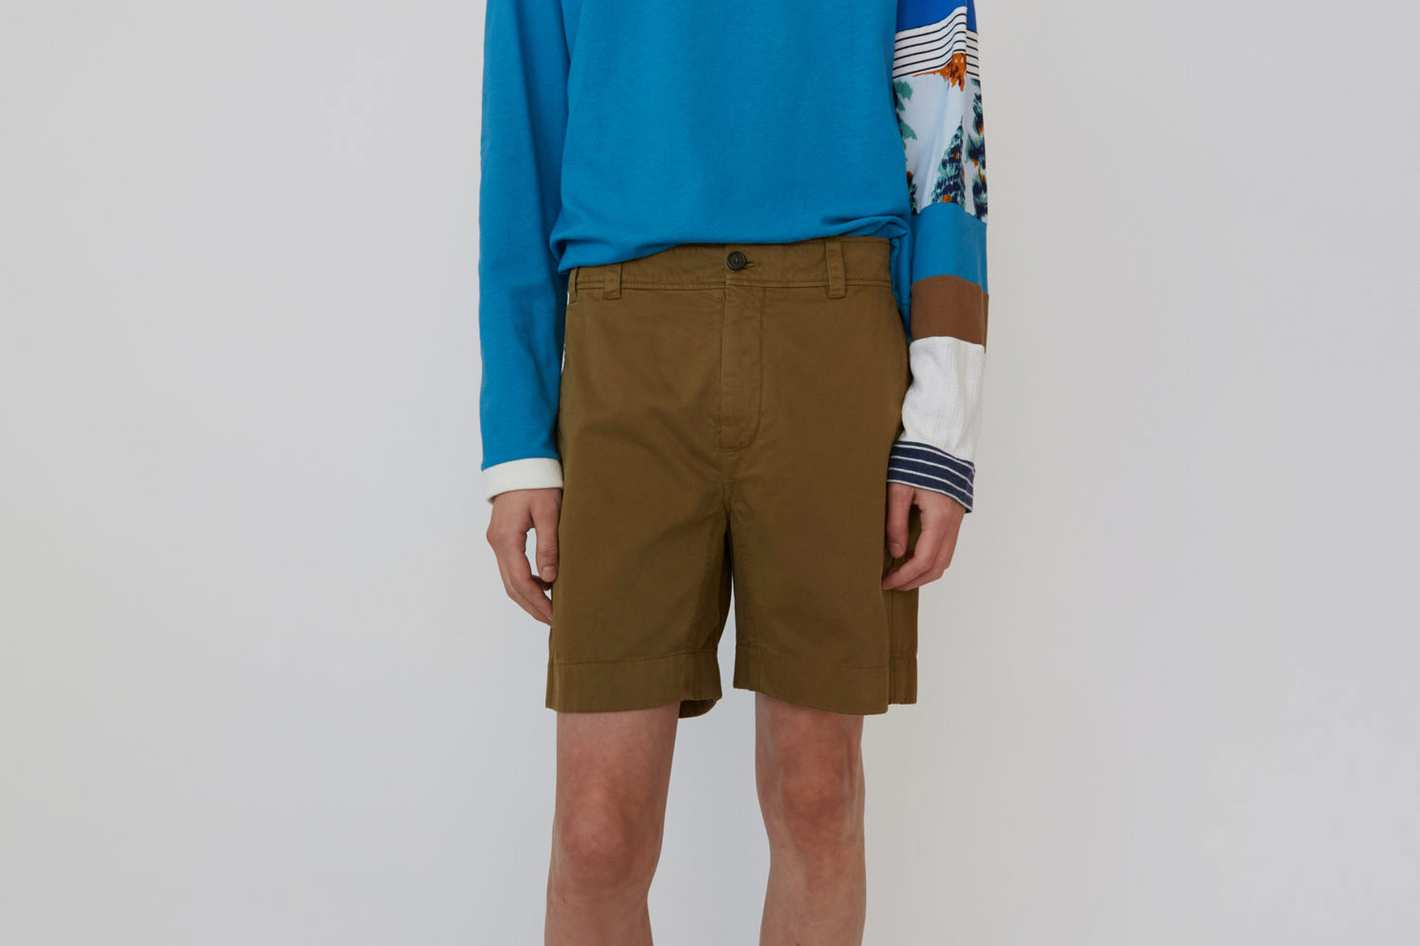 Acne Studios Cotton Shorts Olive Green